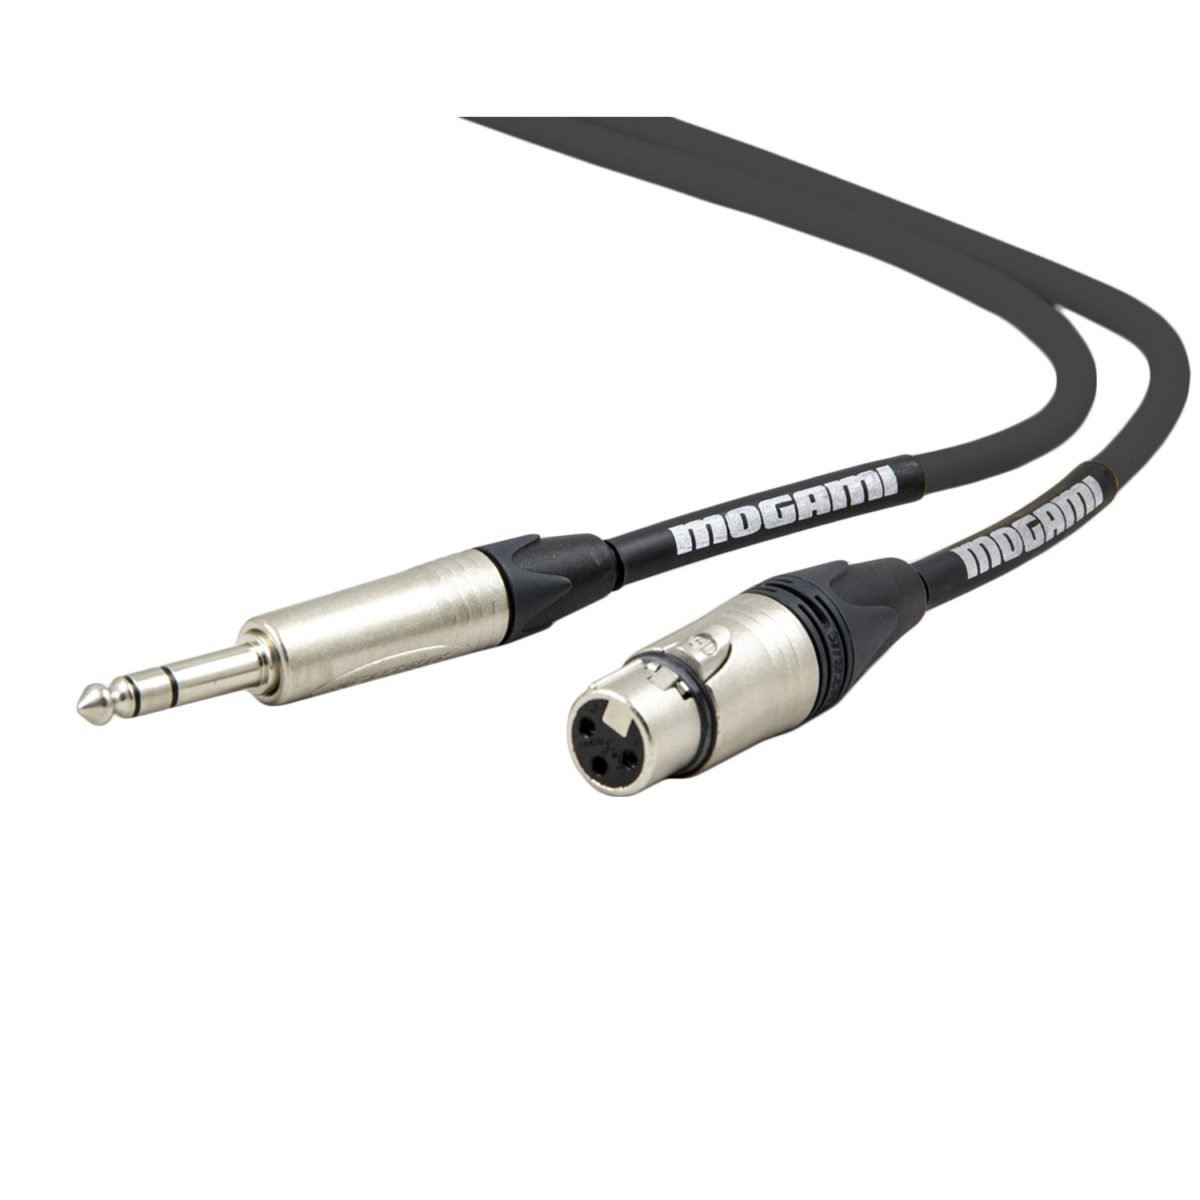 MOGAMI 2534 XLRF-TRS Studio Accessory Cable uses the high-quality 2534